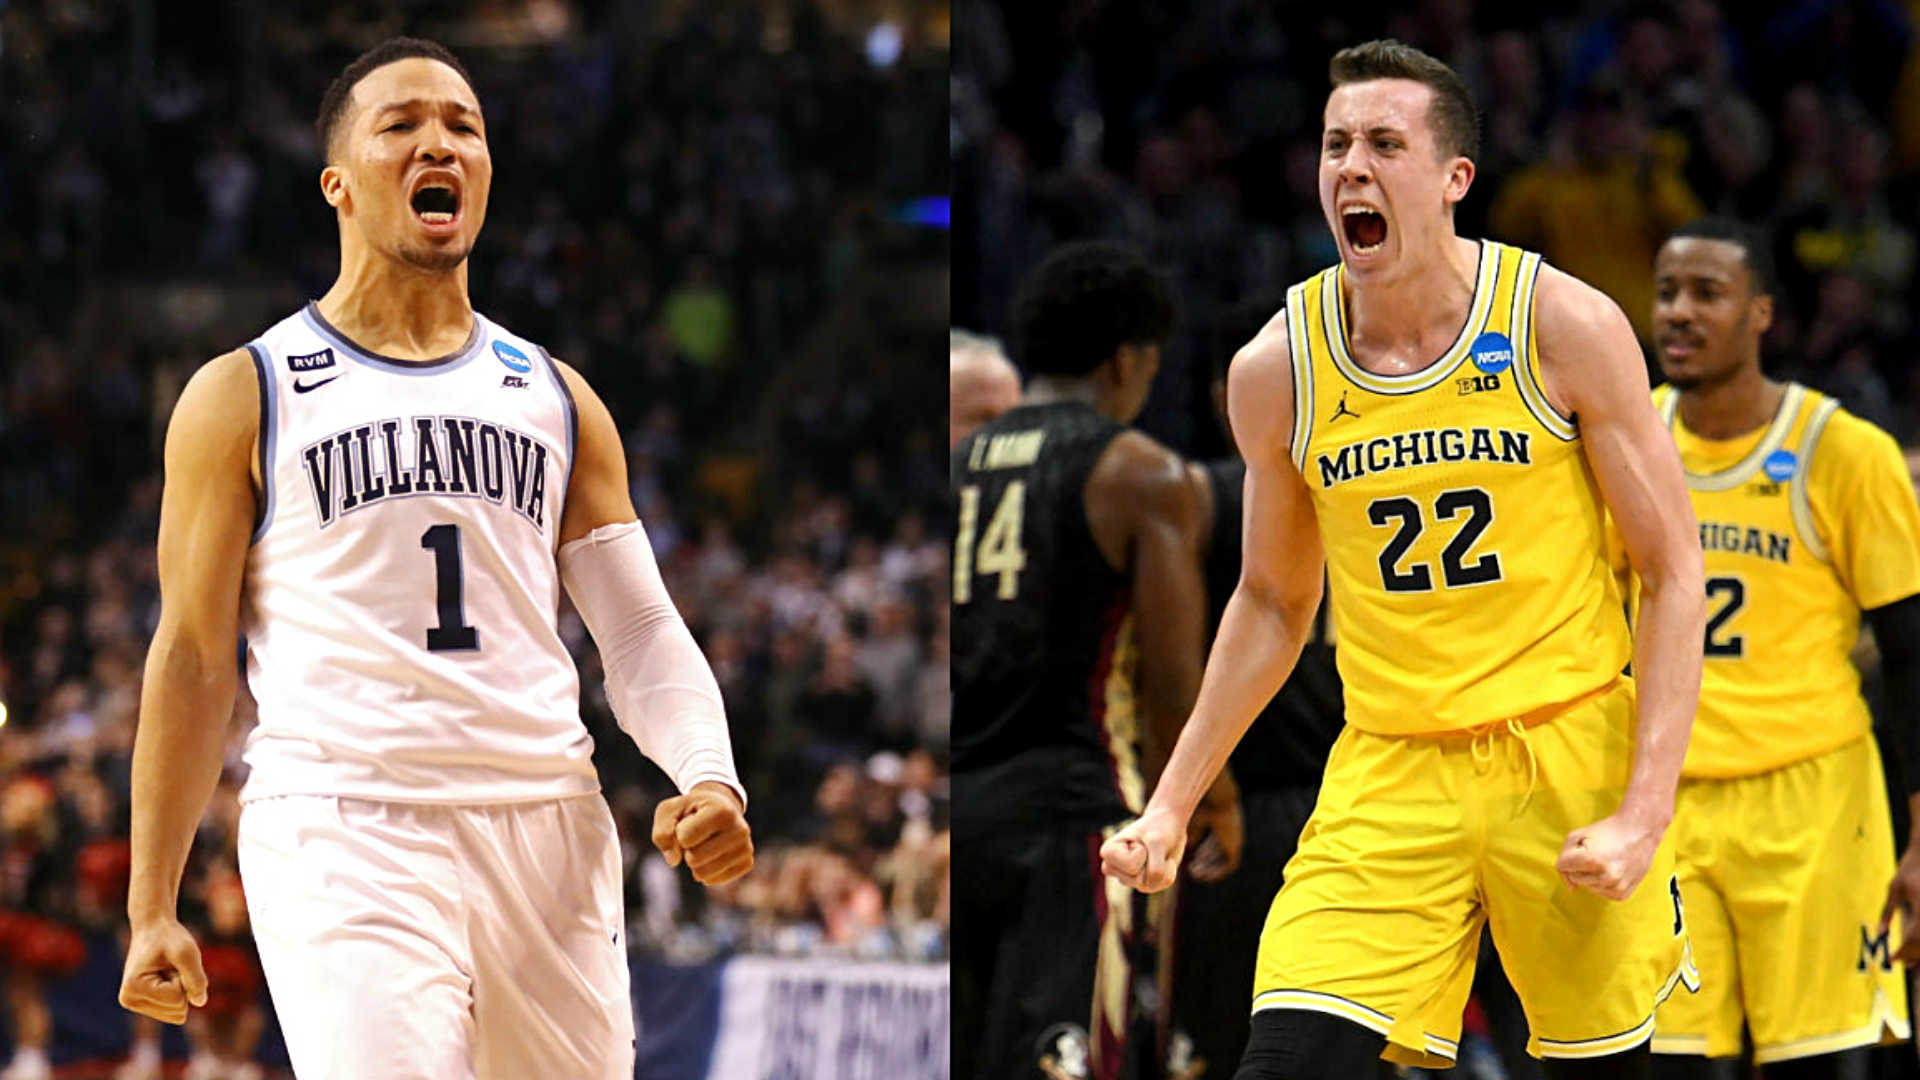 Villanova's rise to the top of college basketball is truly astounding